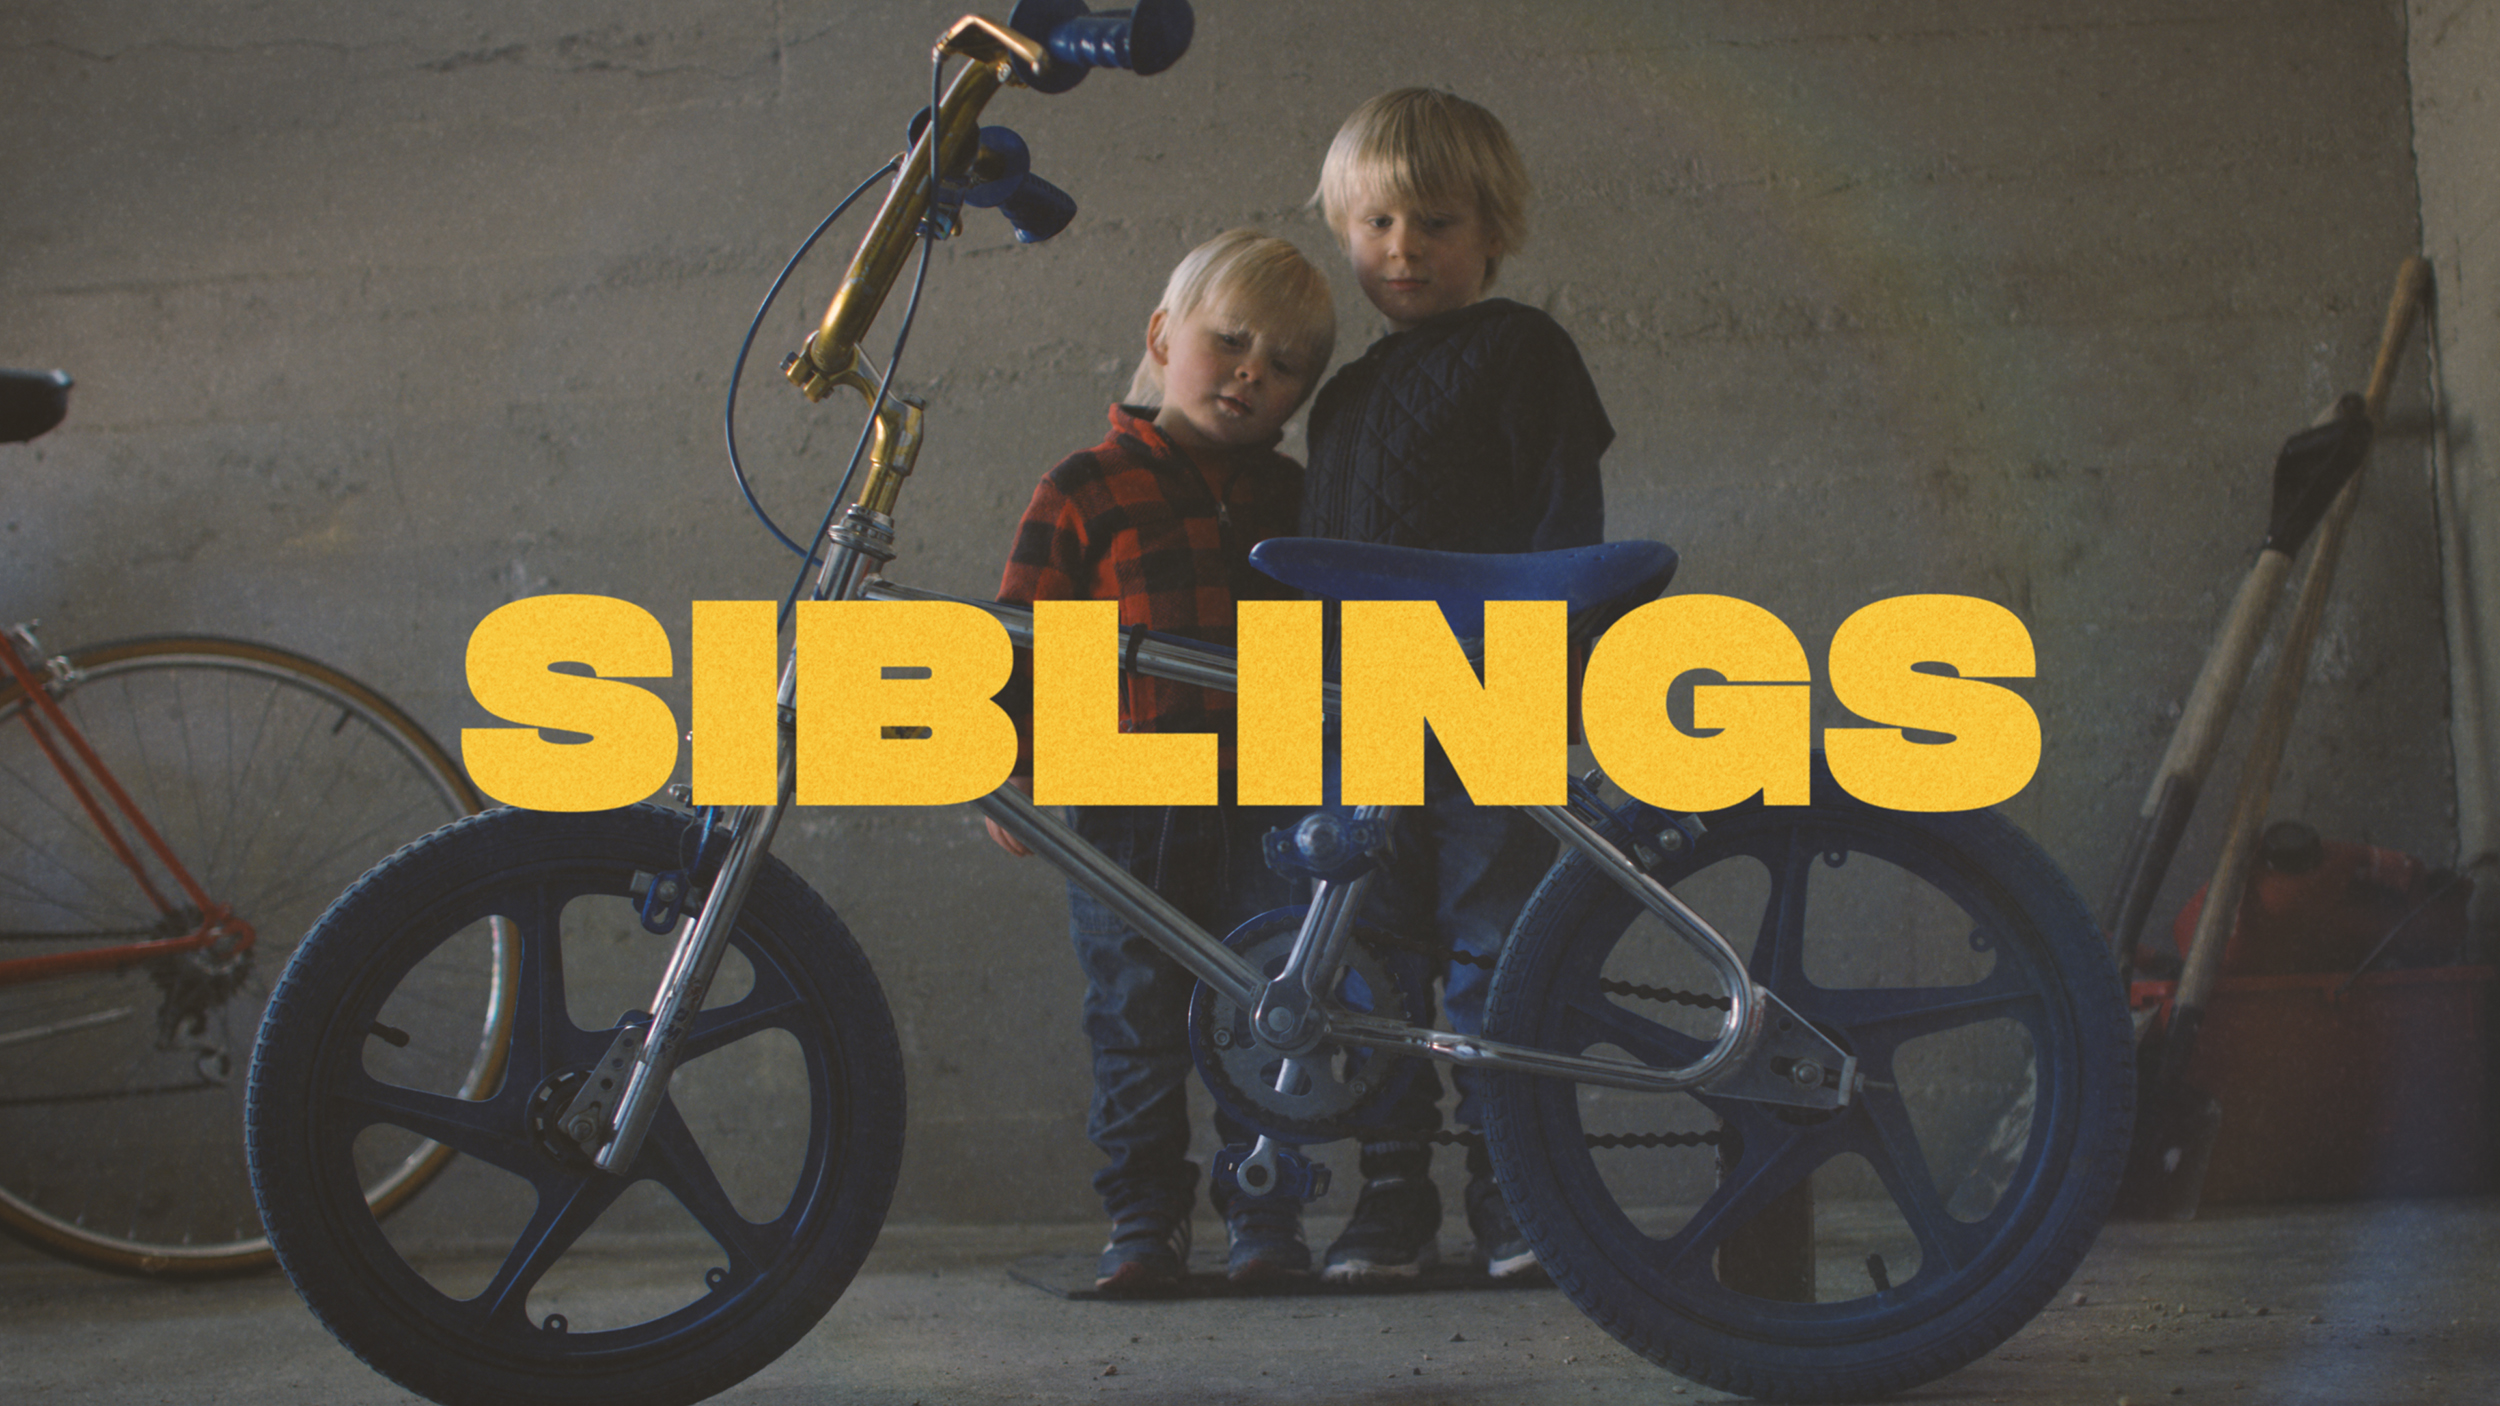 Siblings header